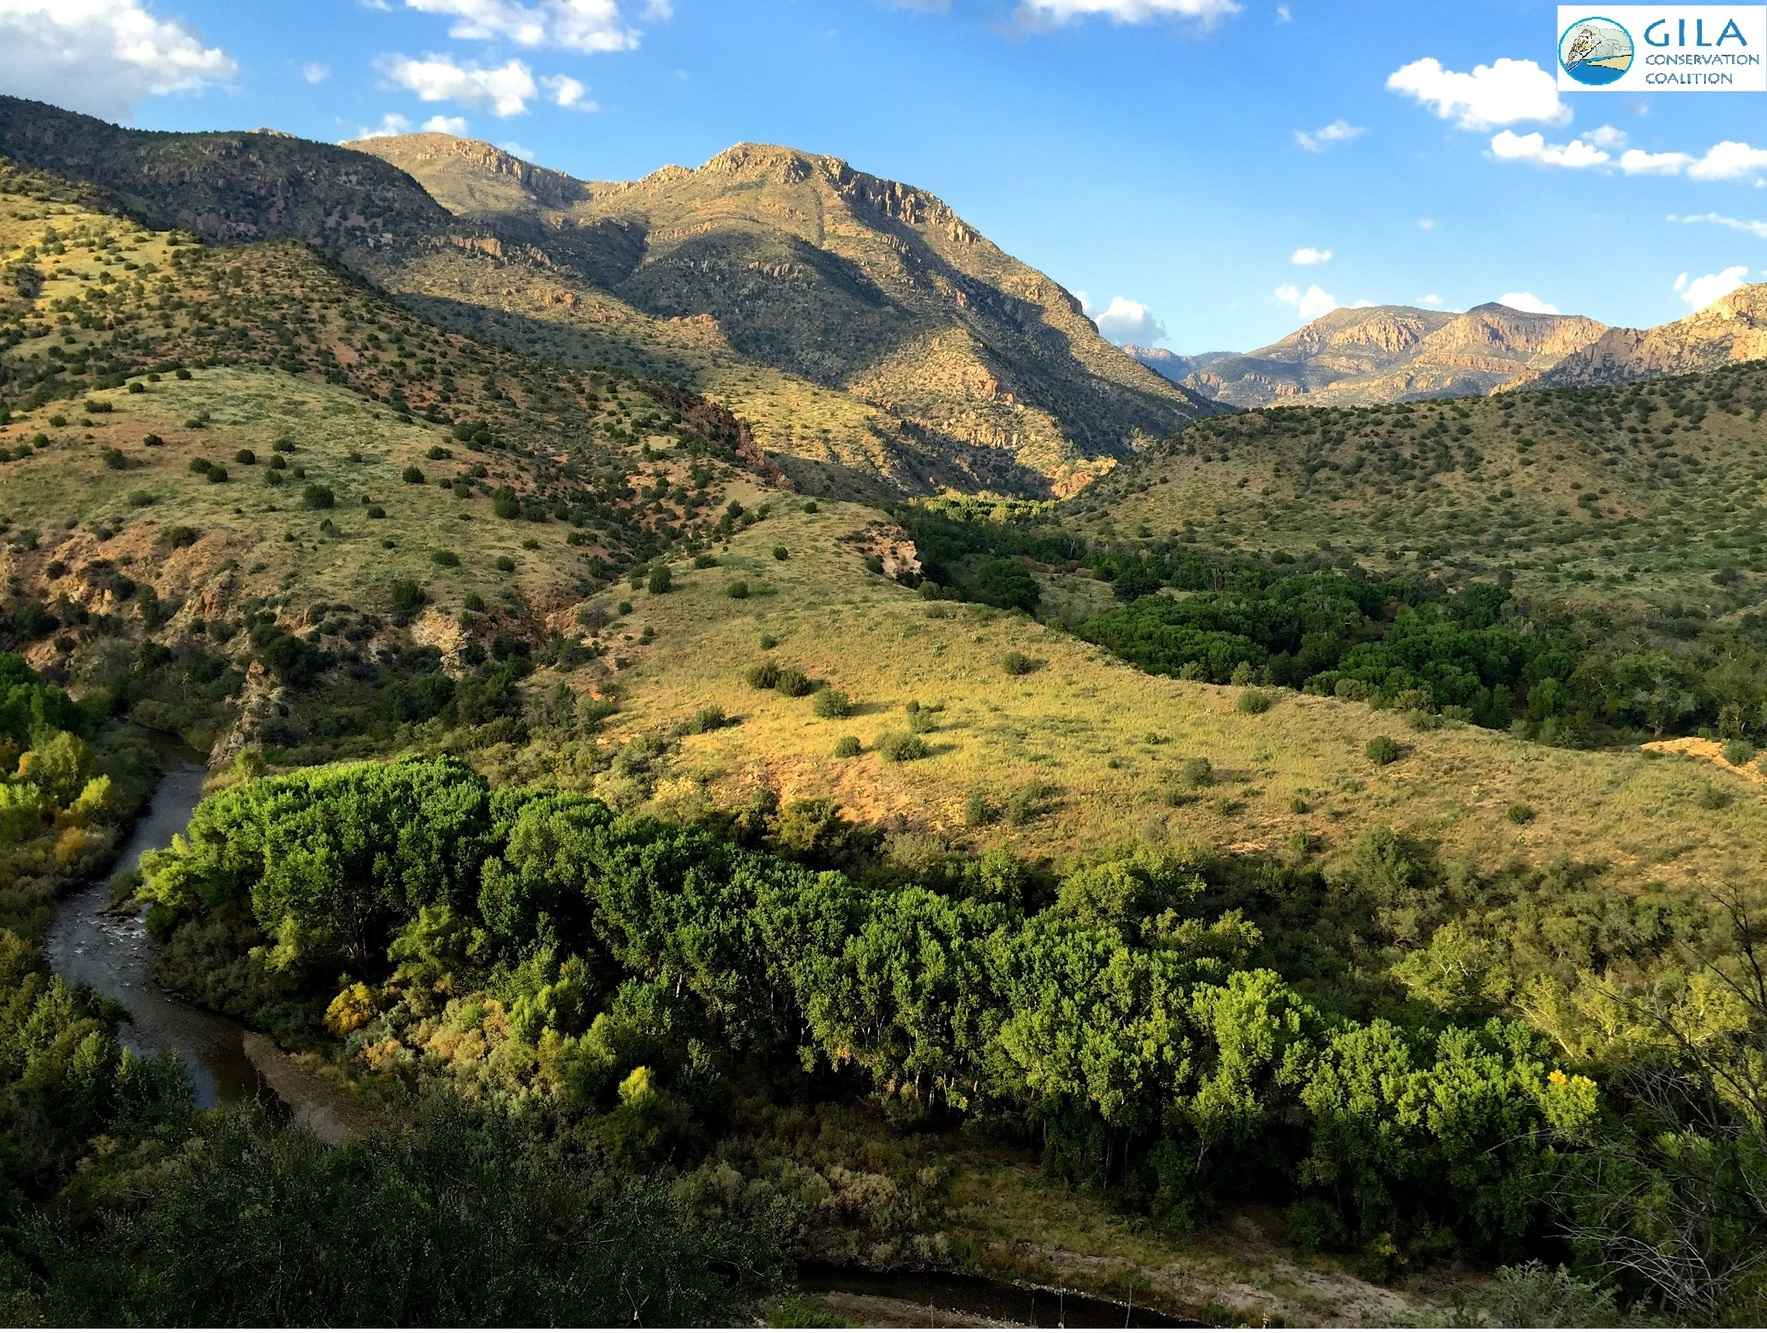 Give to the Gila Conservation Coalition today  image